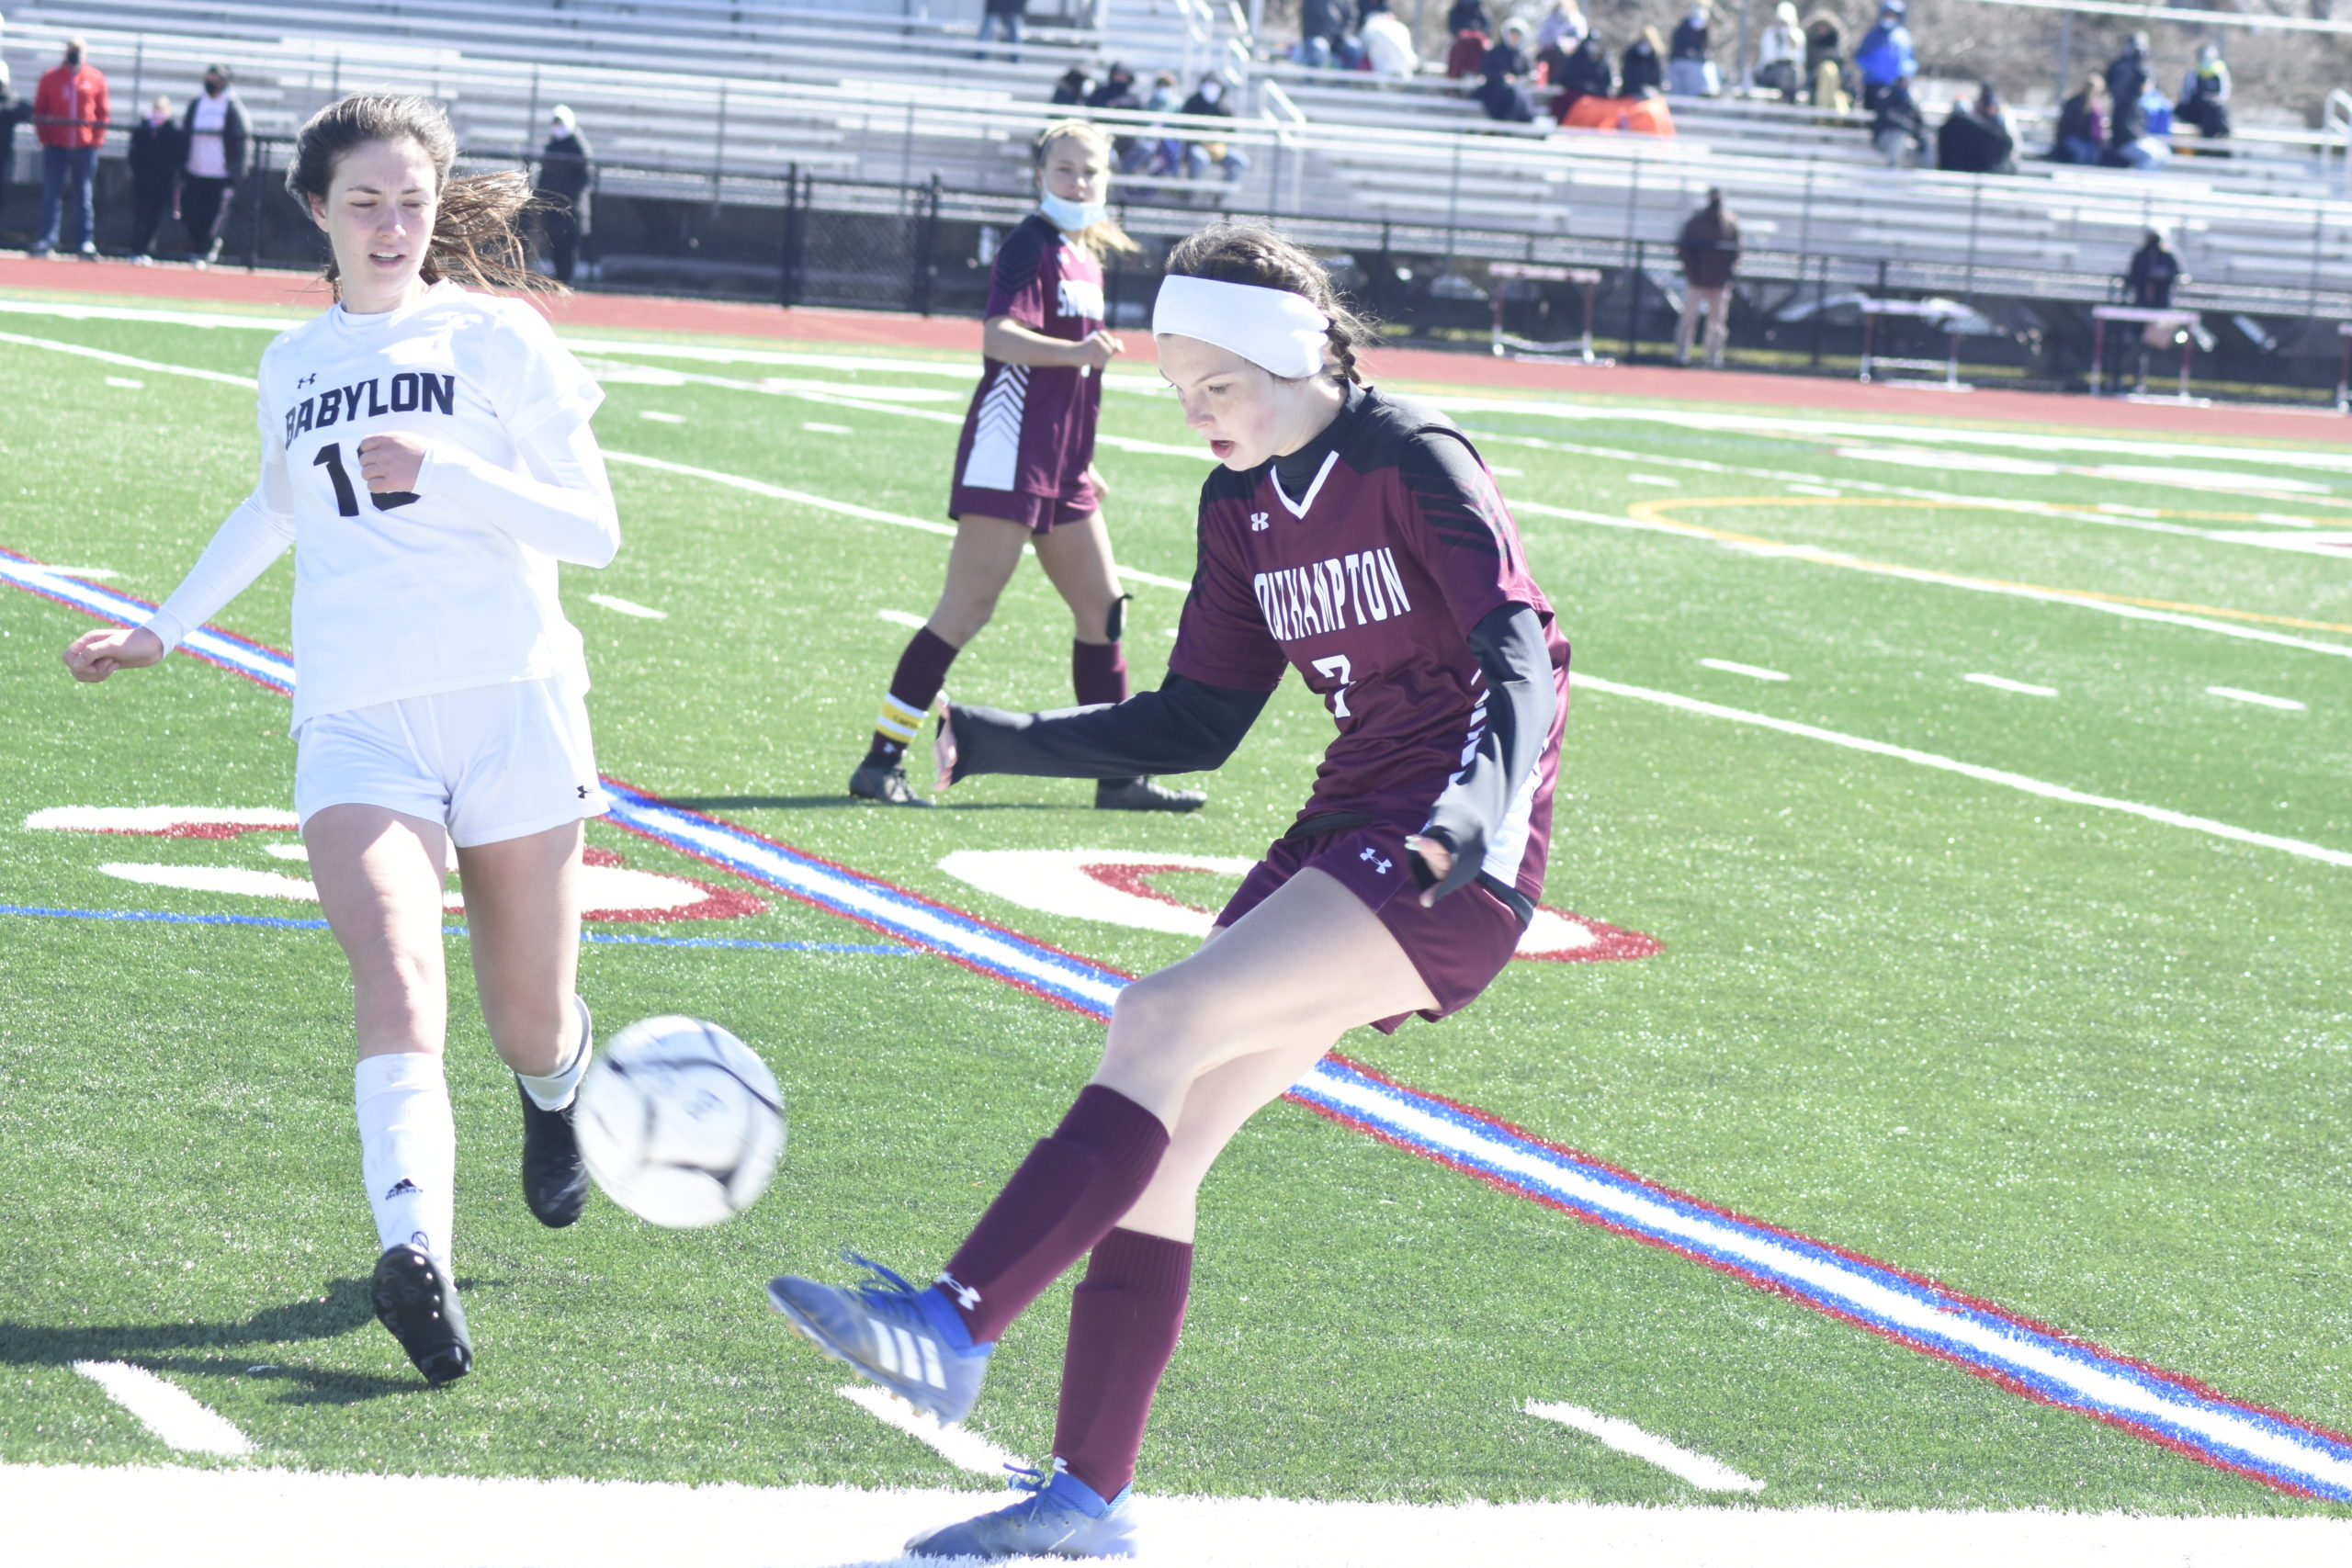 Southampton sophomore defender Hailey Cameron clears the ball.